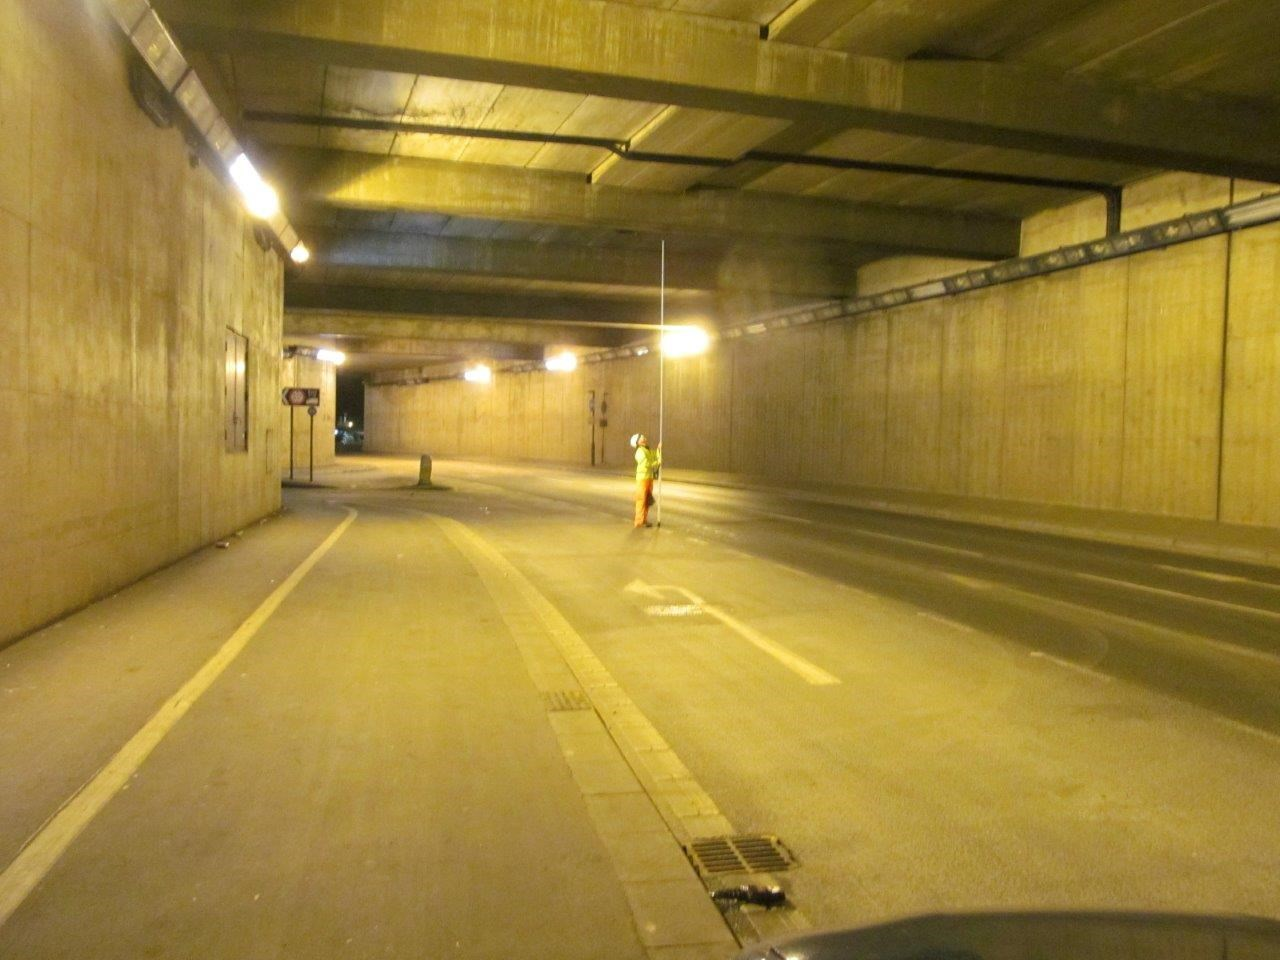 Workers in the tunnel under the Frenchgate Centre at night.